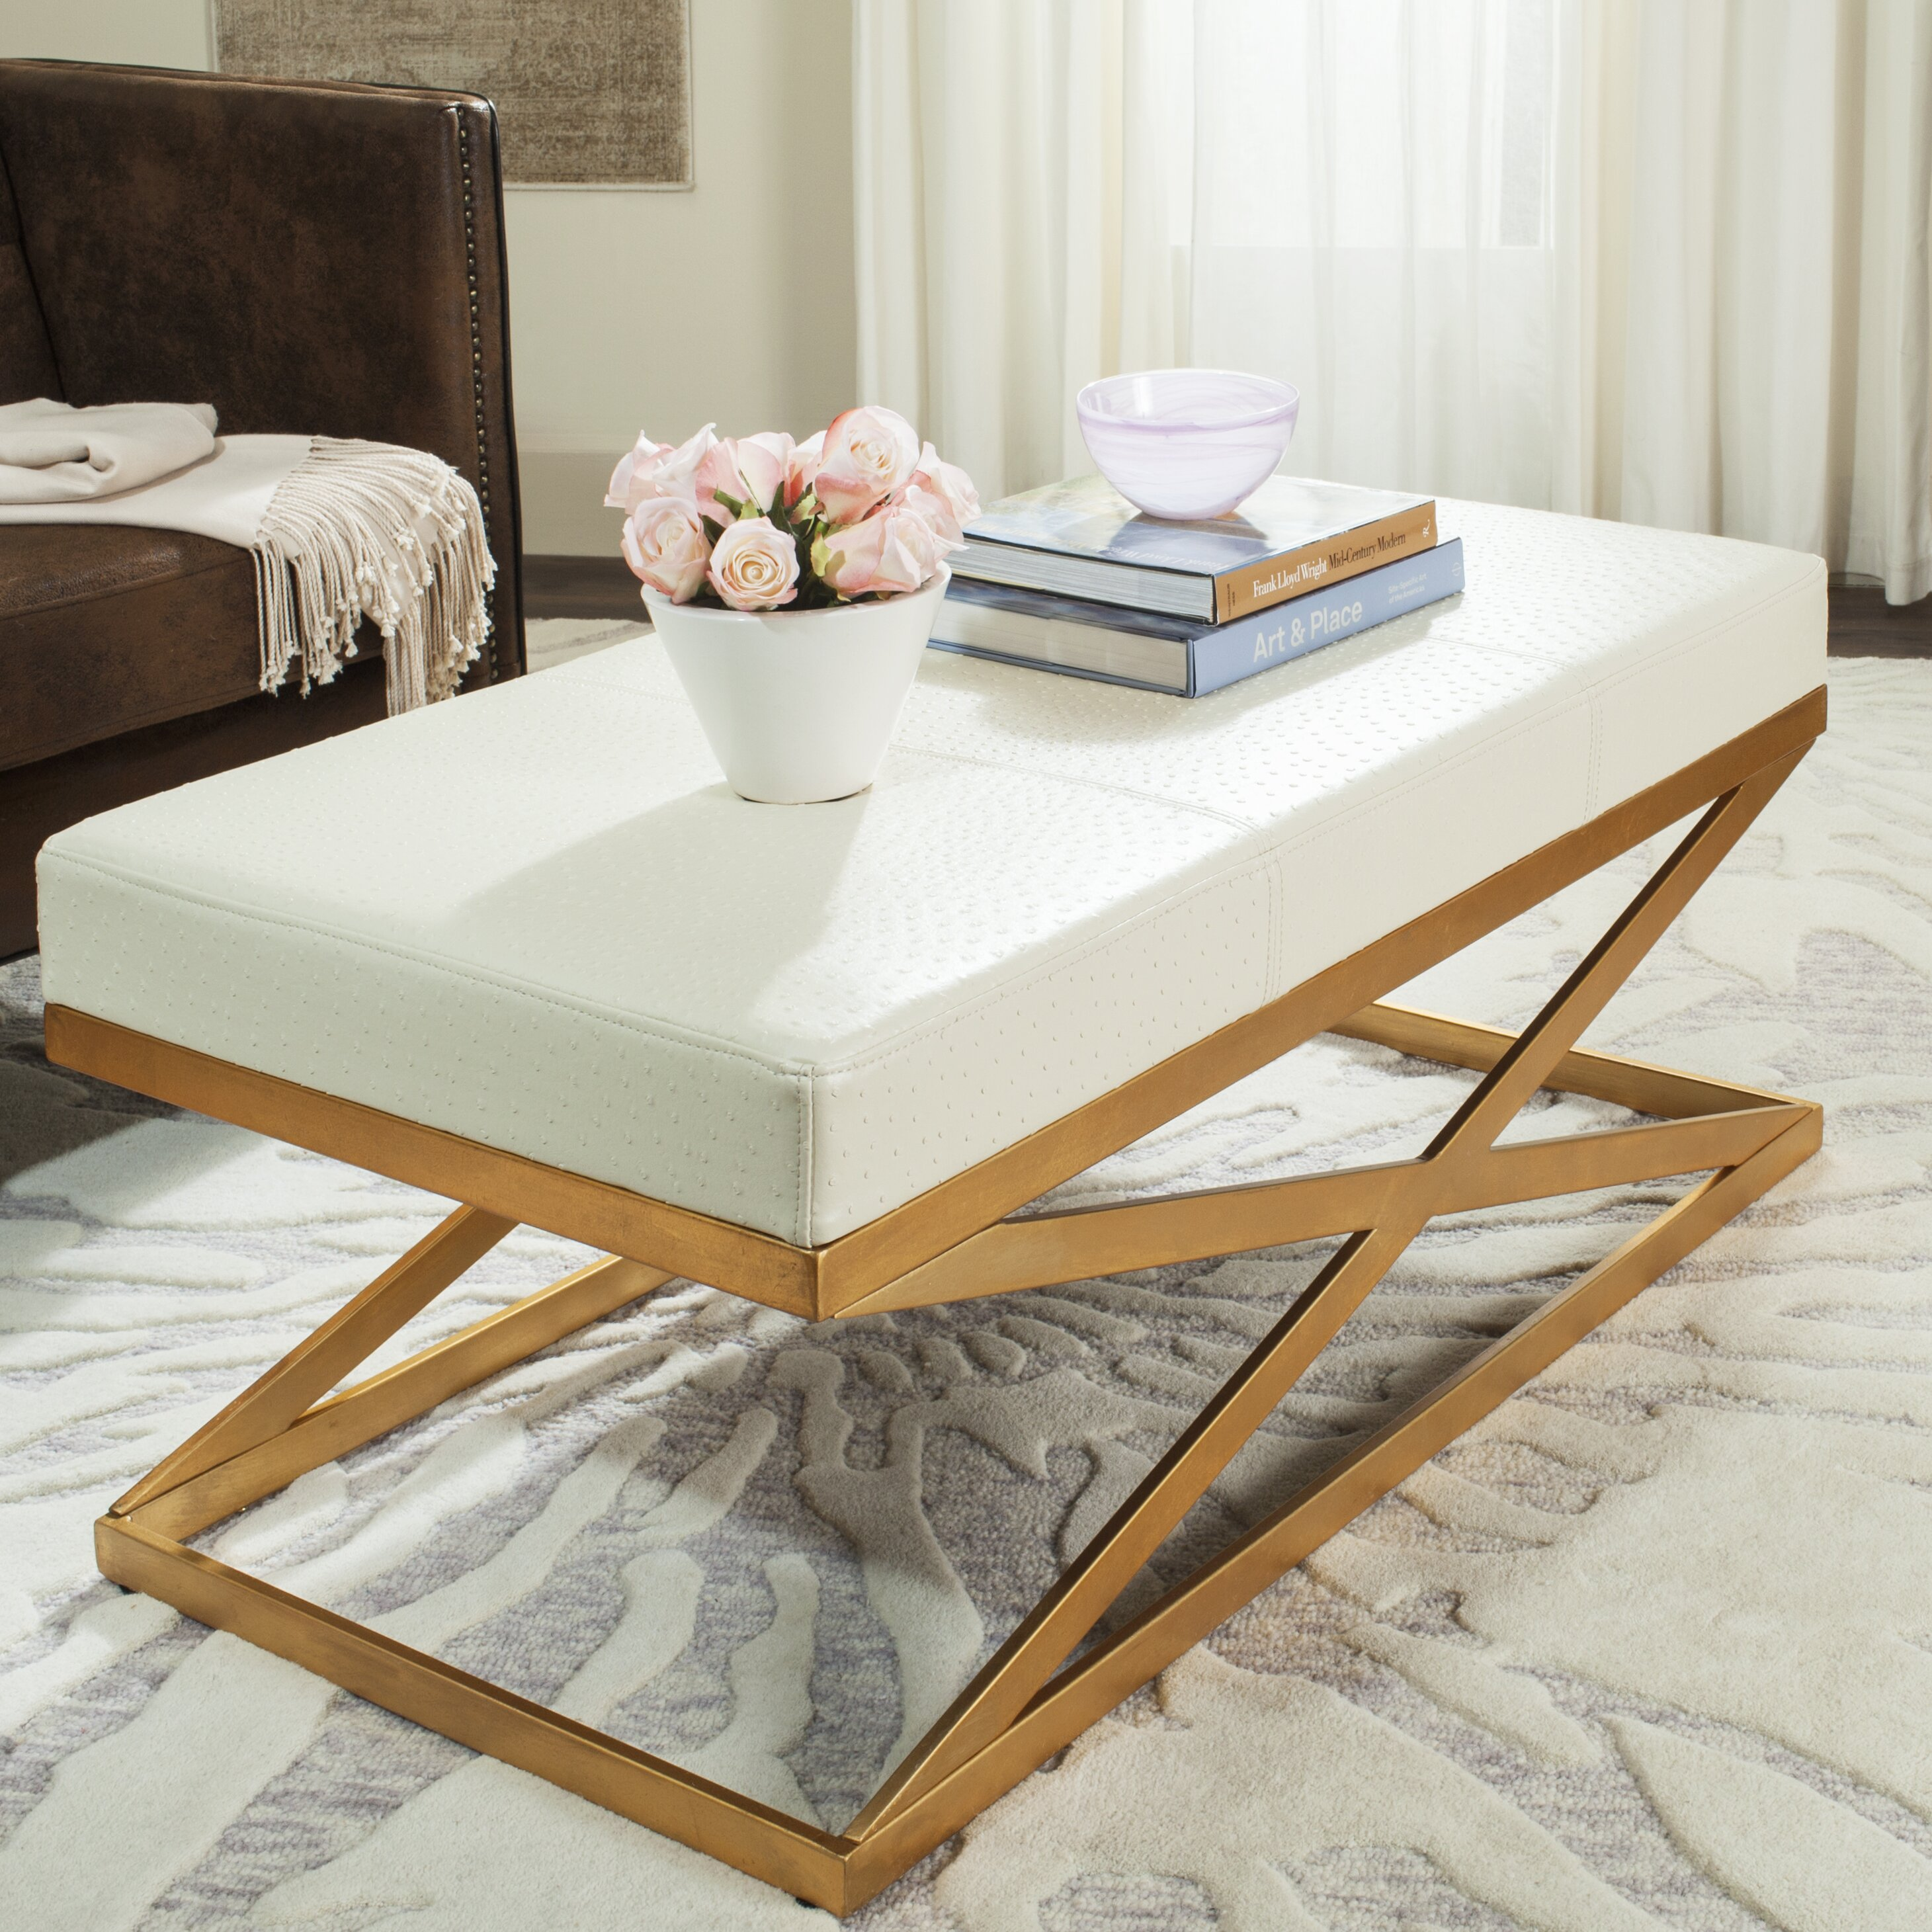 Foyer Leather Bench : Mercer ray leather entryway bench reviews wayfair